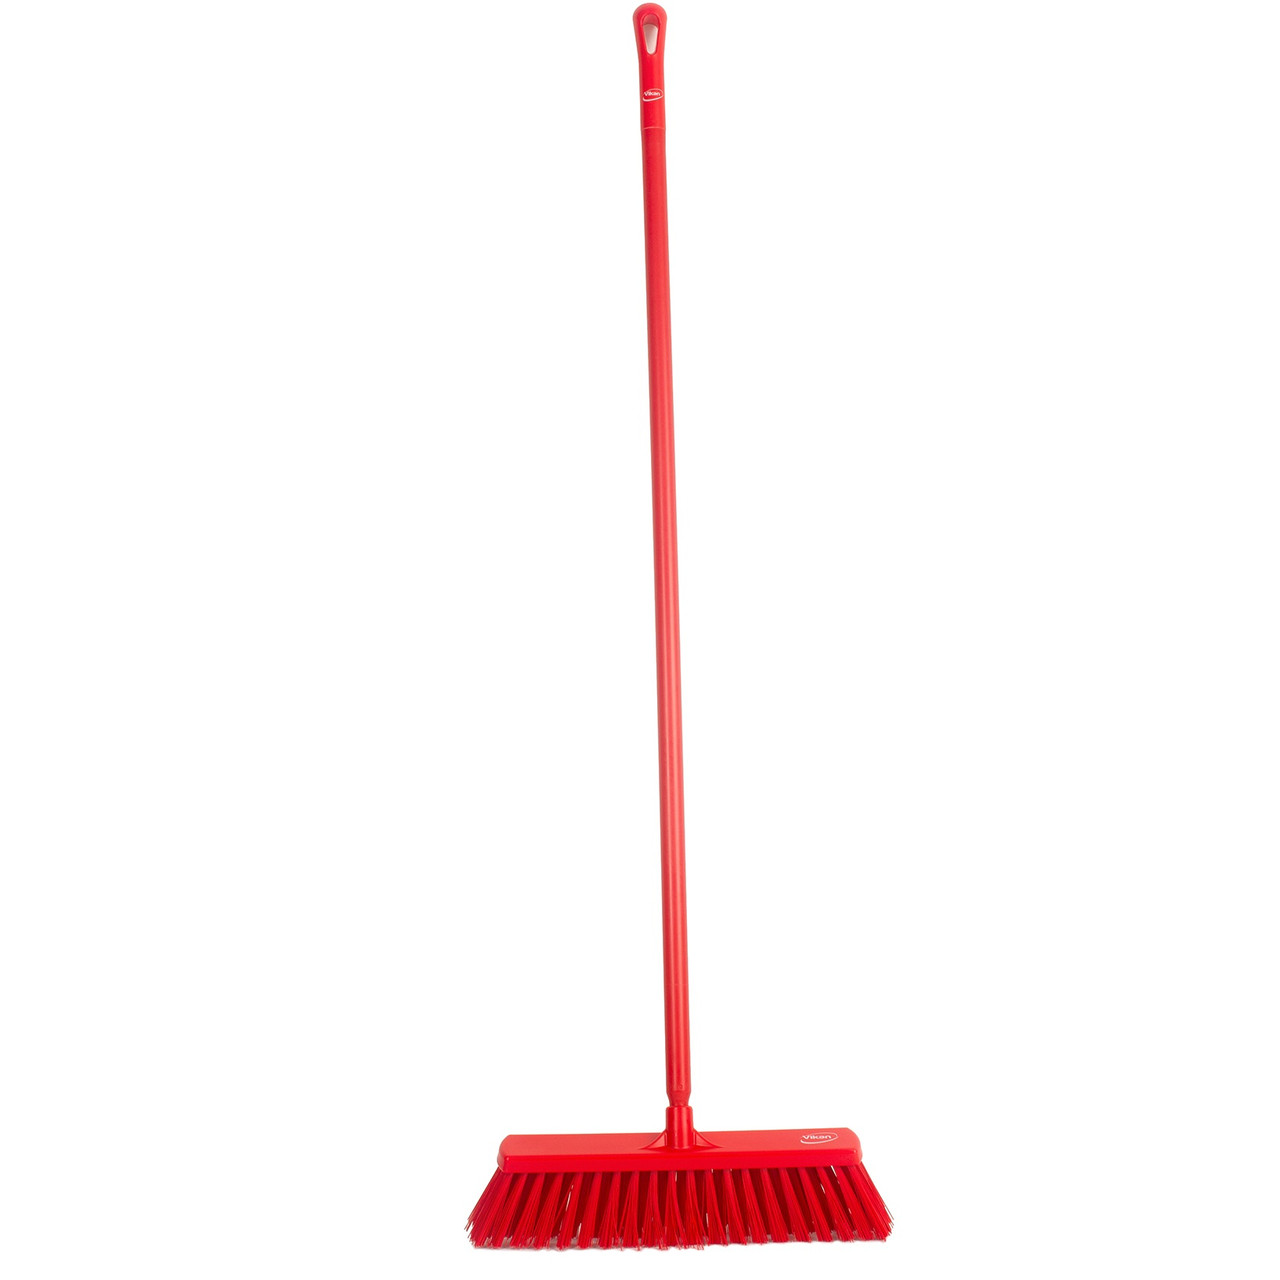 Vikan 24 Combo Push Broom Soft//Stiff Black